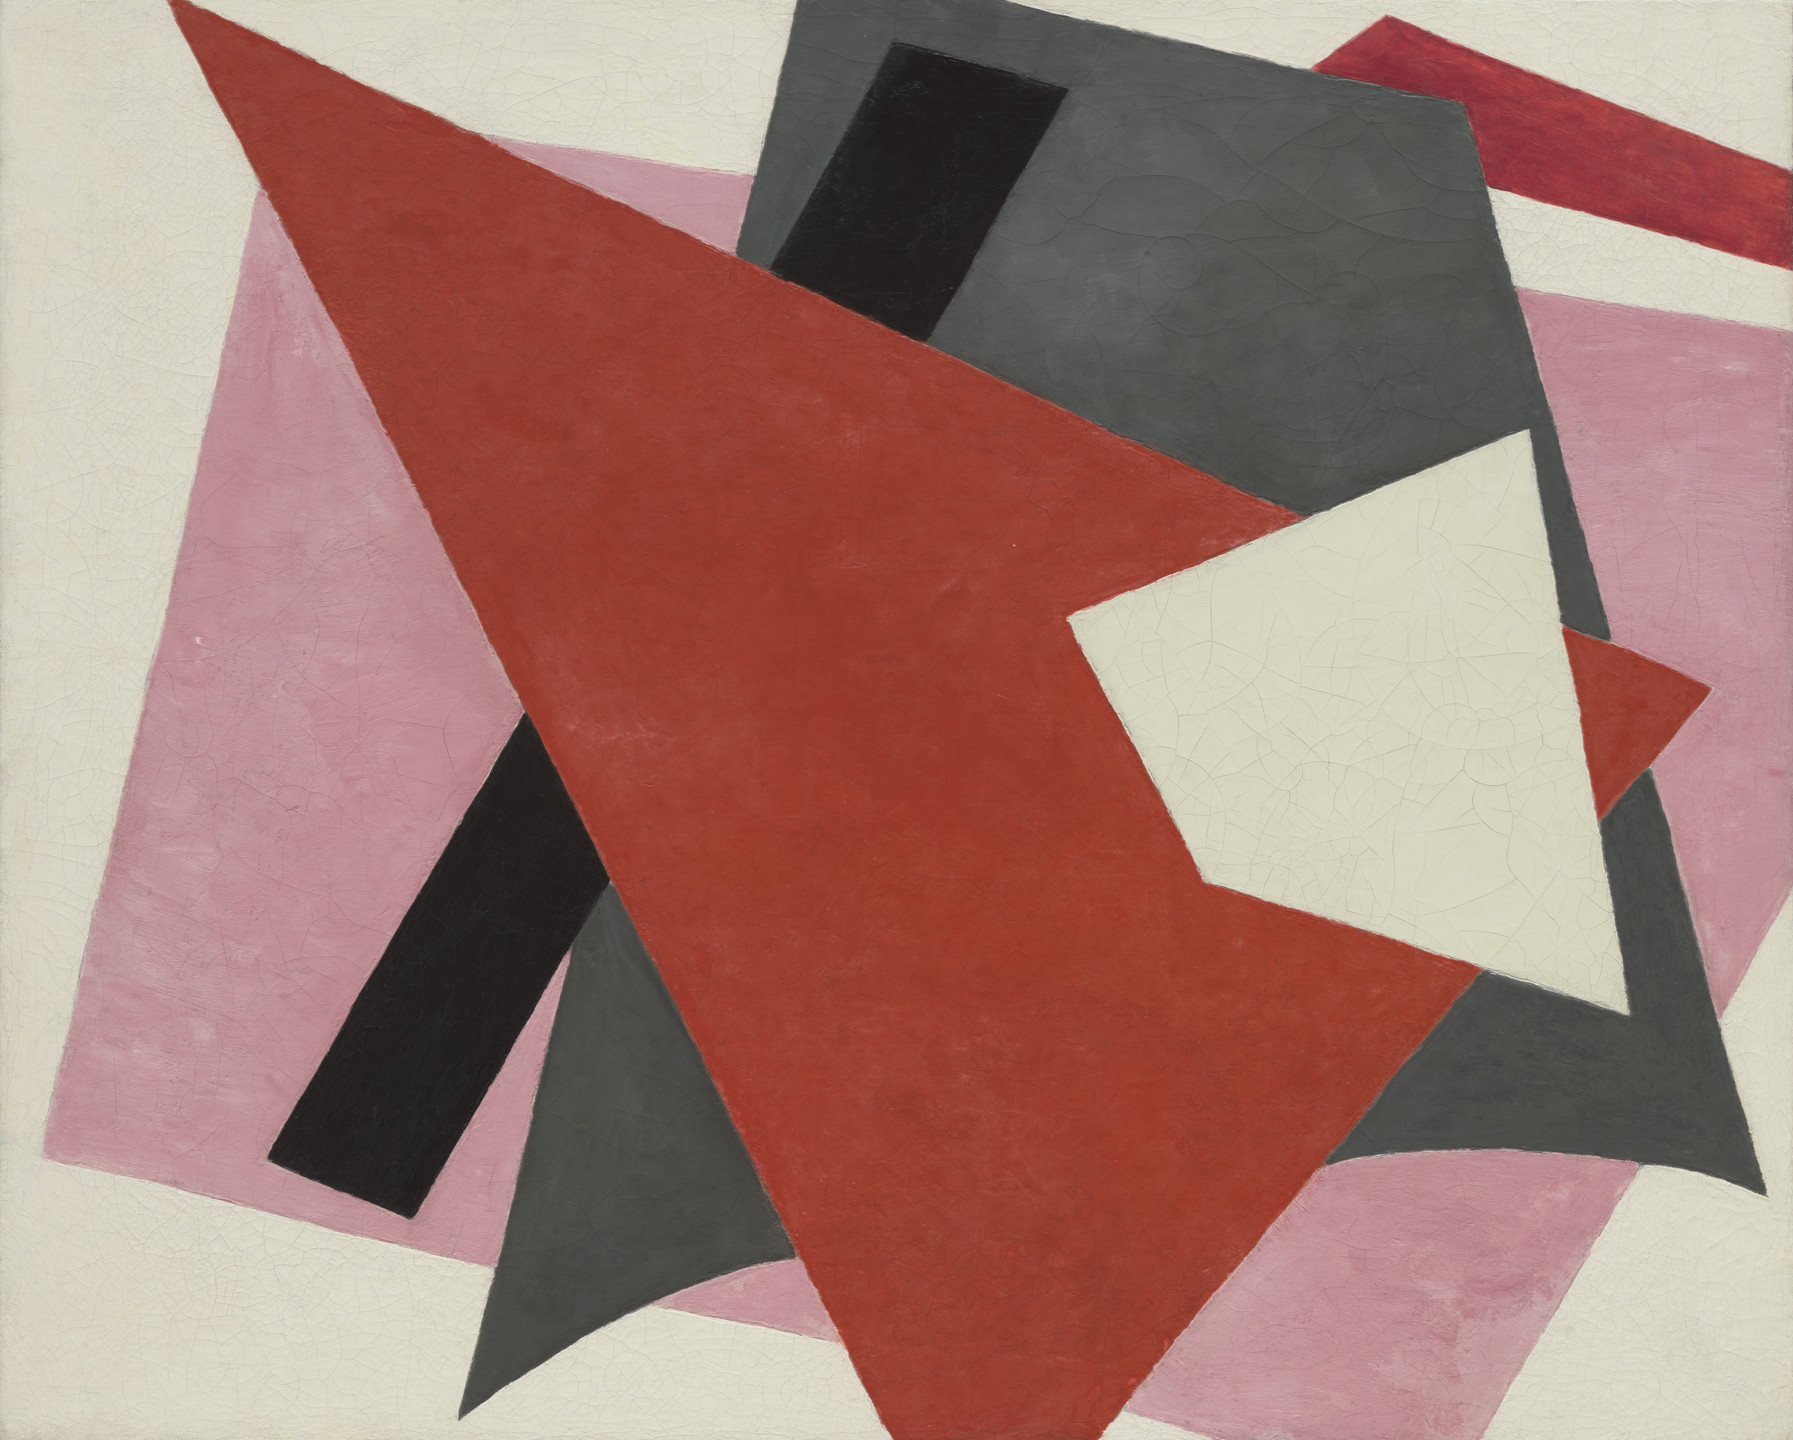 Liubov Popova. Painterly Architectonic. 1917